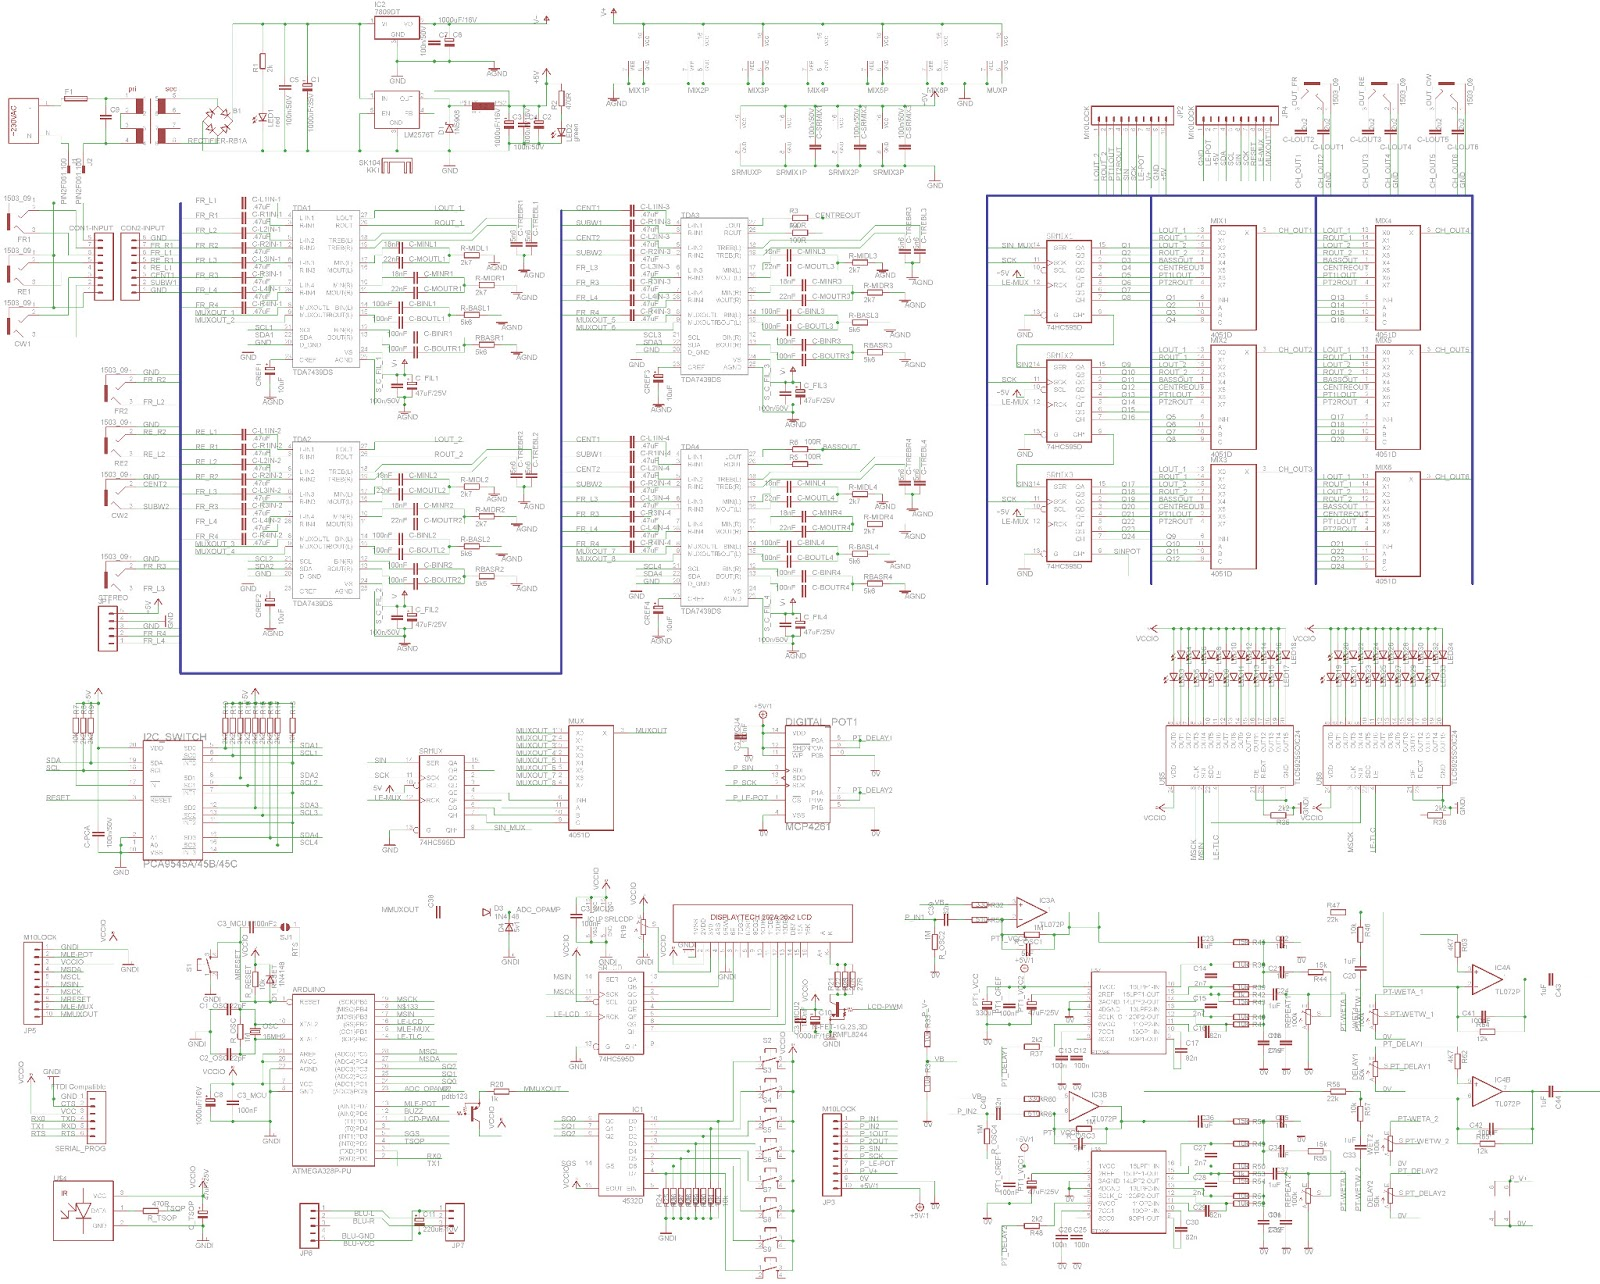 Circuit Diagram Of 6 Channel Audio Mixer Wiring Library